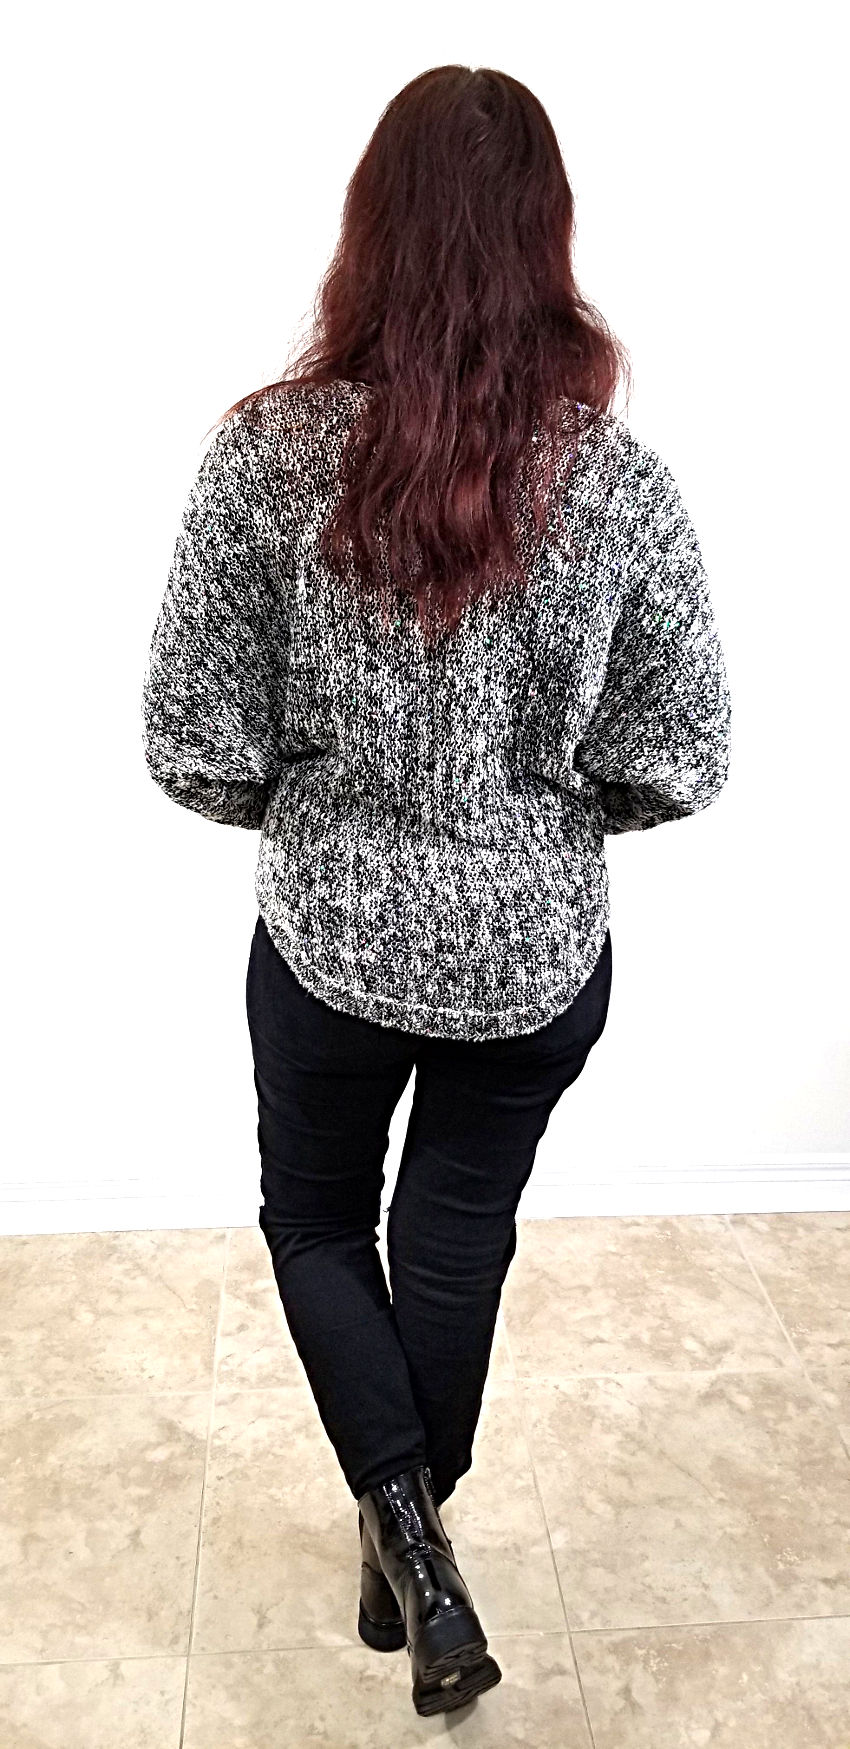 Polar Bear Style Black and White Sparkly Top Black Ripped at the Knees Jeans Patent Leather Combat Boots